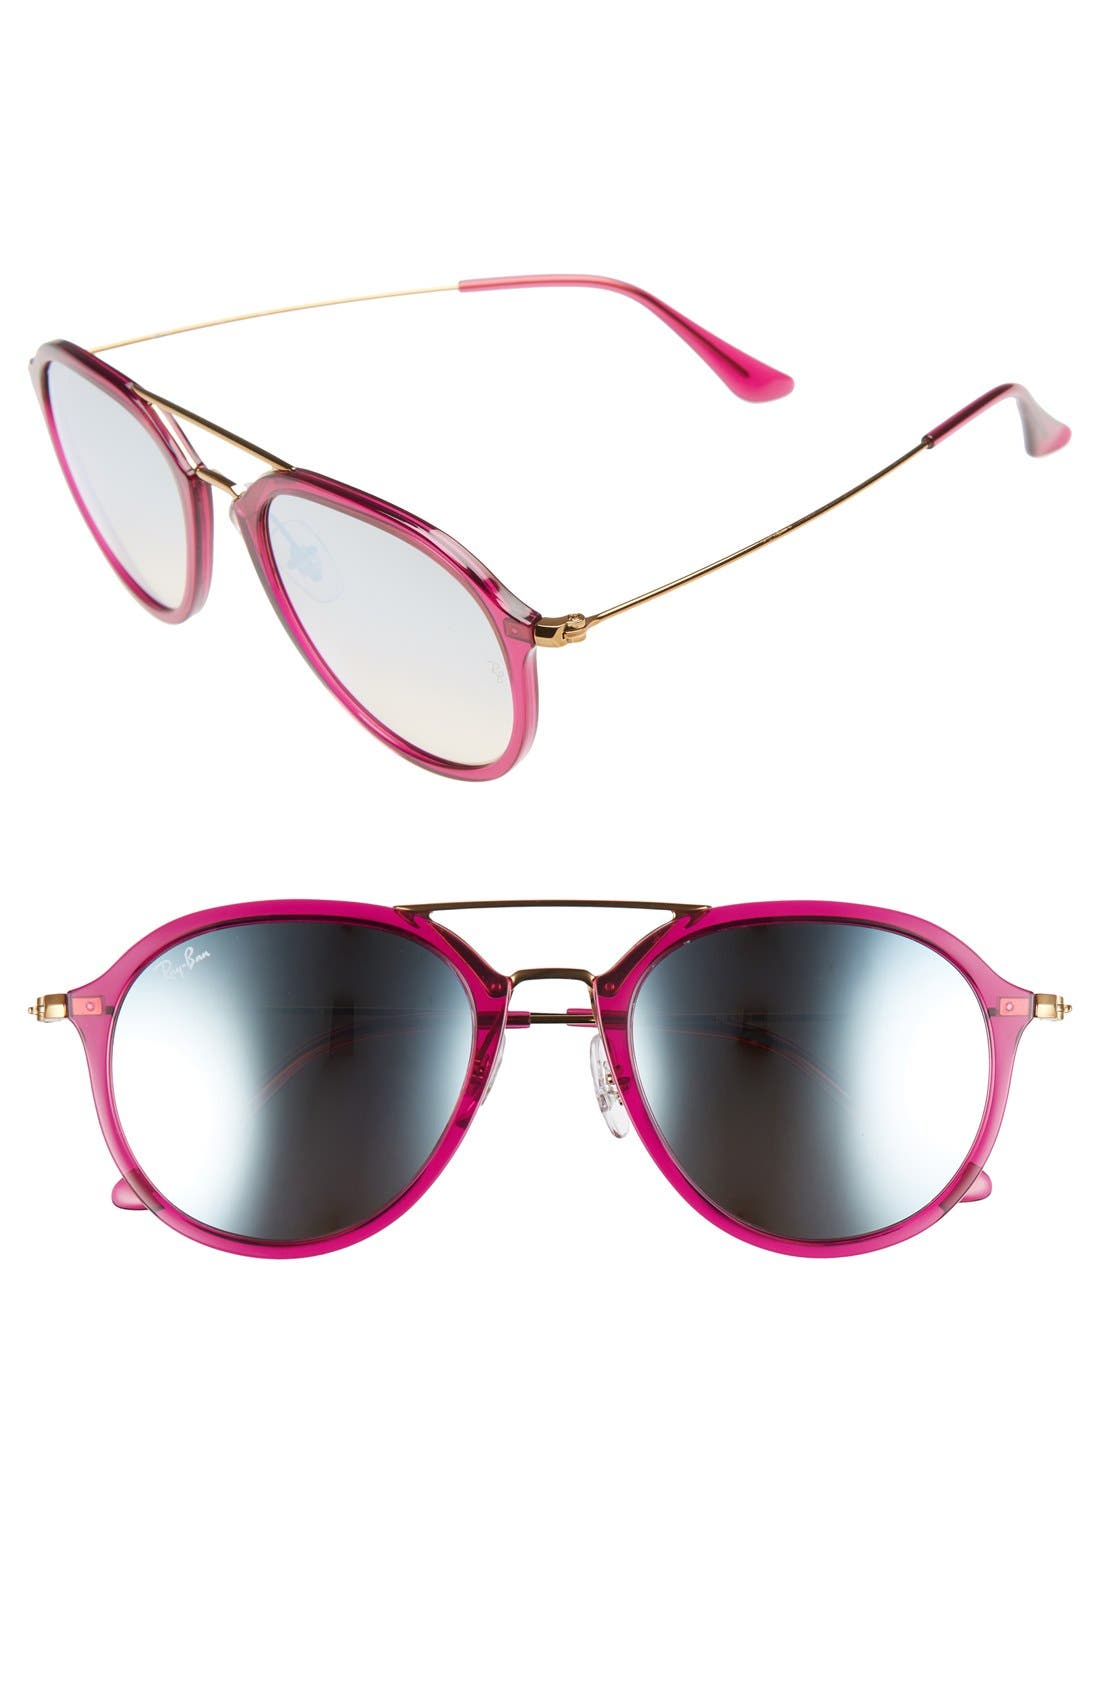 Ray-Ban Youngster 53mm Aviator Sunglasses